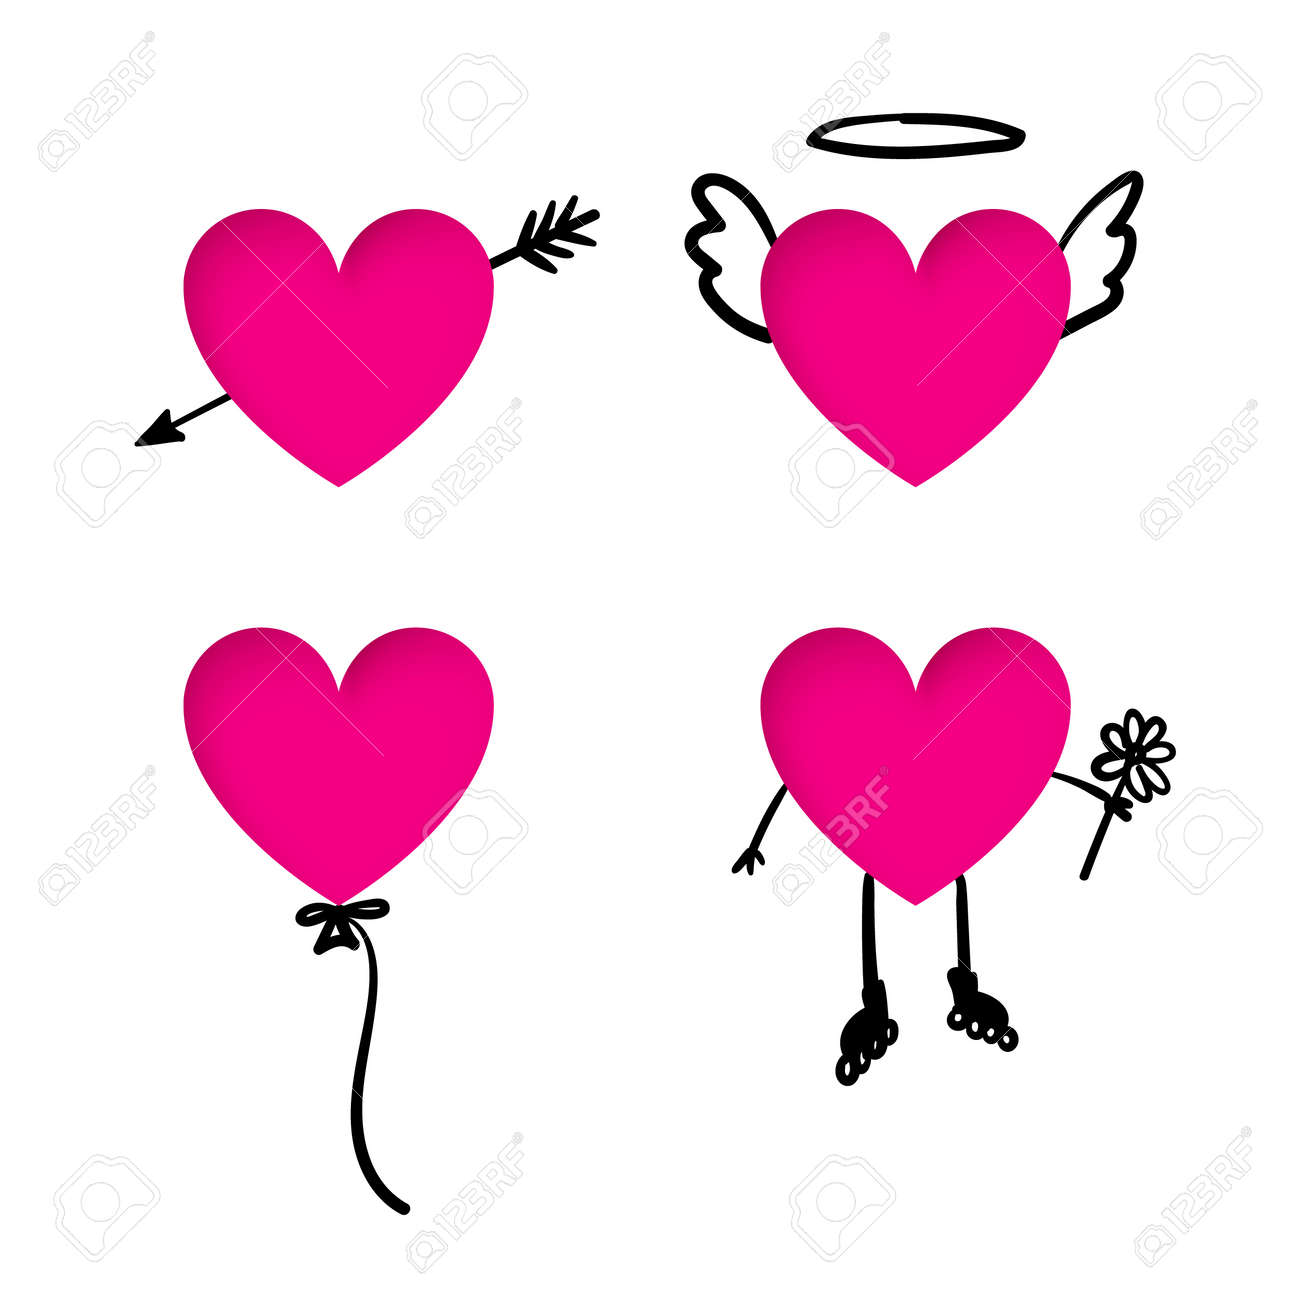 Valentine S Day Heart Stickers With Doodle Details Heart Cut Royalty Free Cliparts Vectors And Stock Illustration Image 51624661